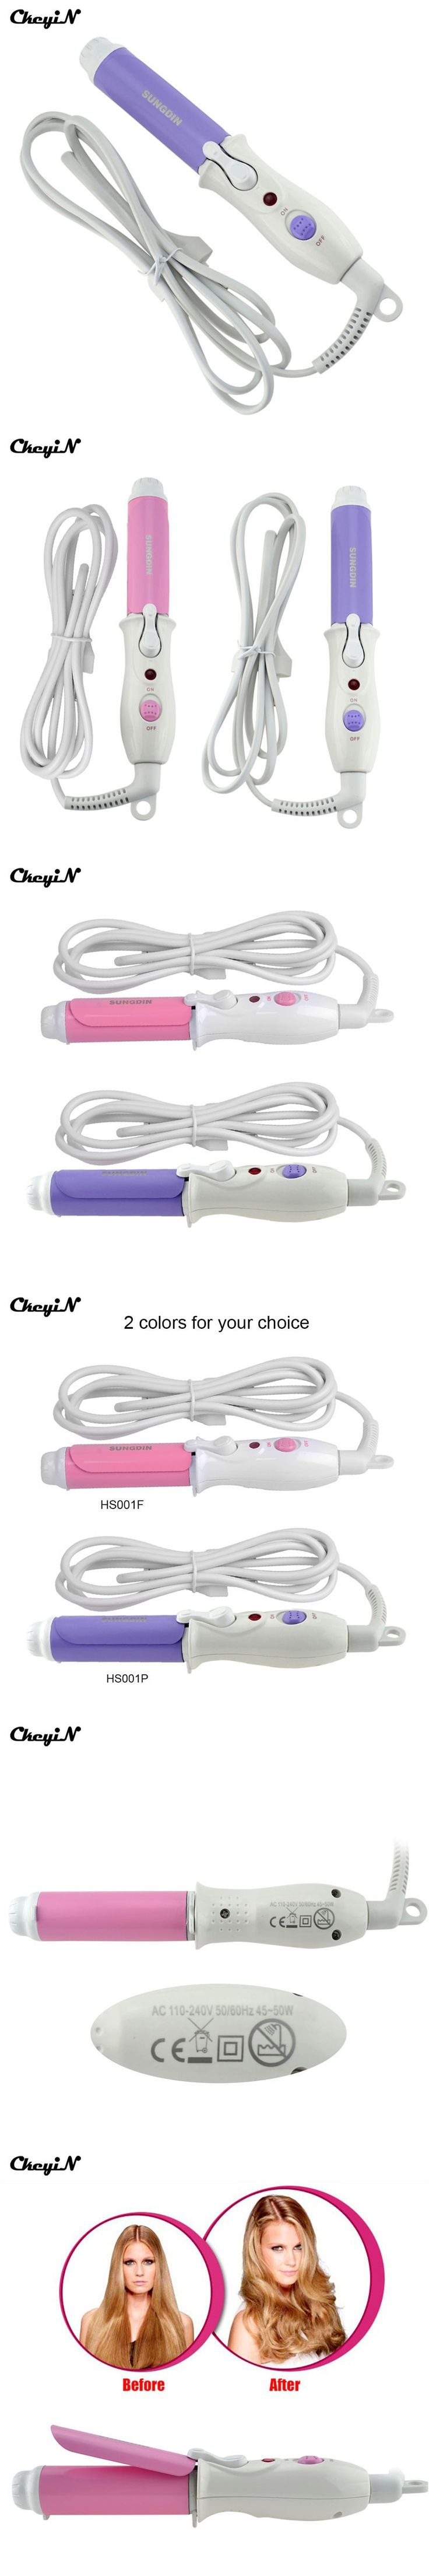 Portable Hair Curlers Rollers Electric Hair Styling Tool Mini Travel Curling Iron 100-240V Hair Styler Curls Girl's Wand Curler